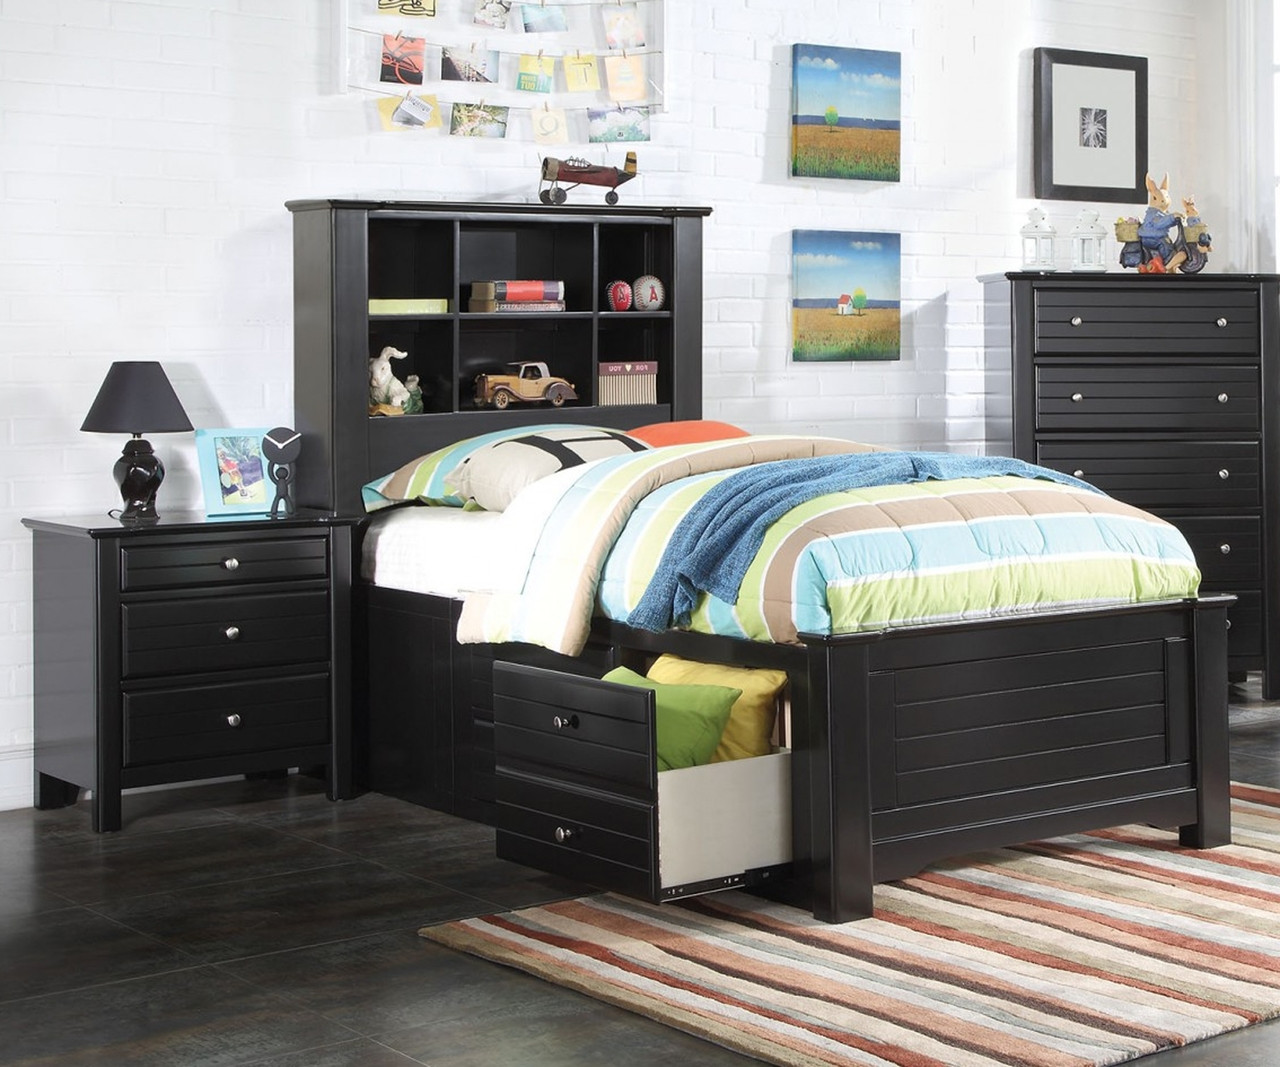 Mallowsea Bookcase Storage Bed Full Size Black